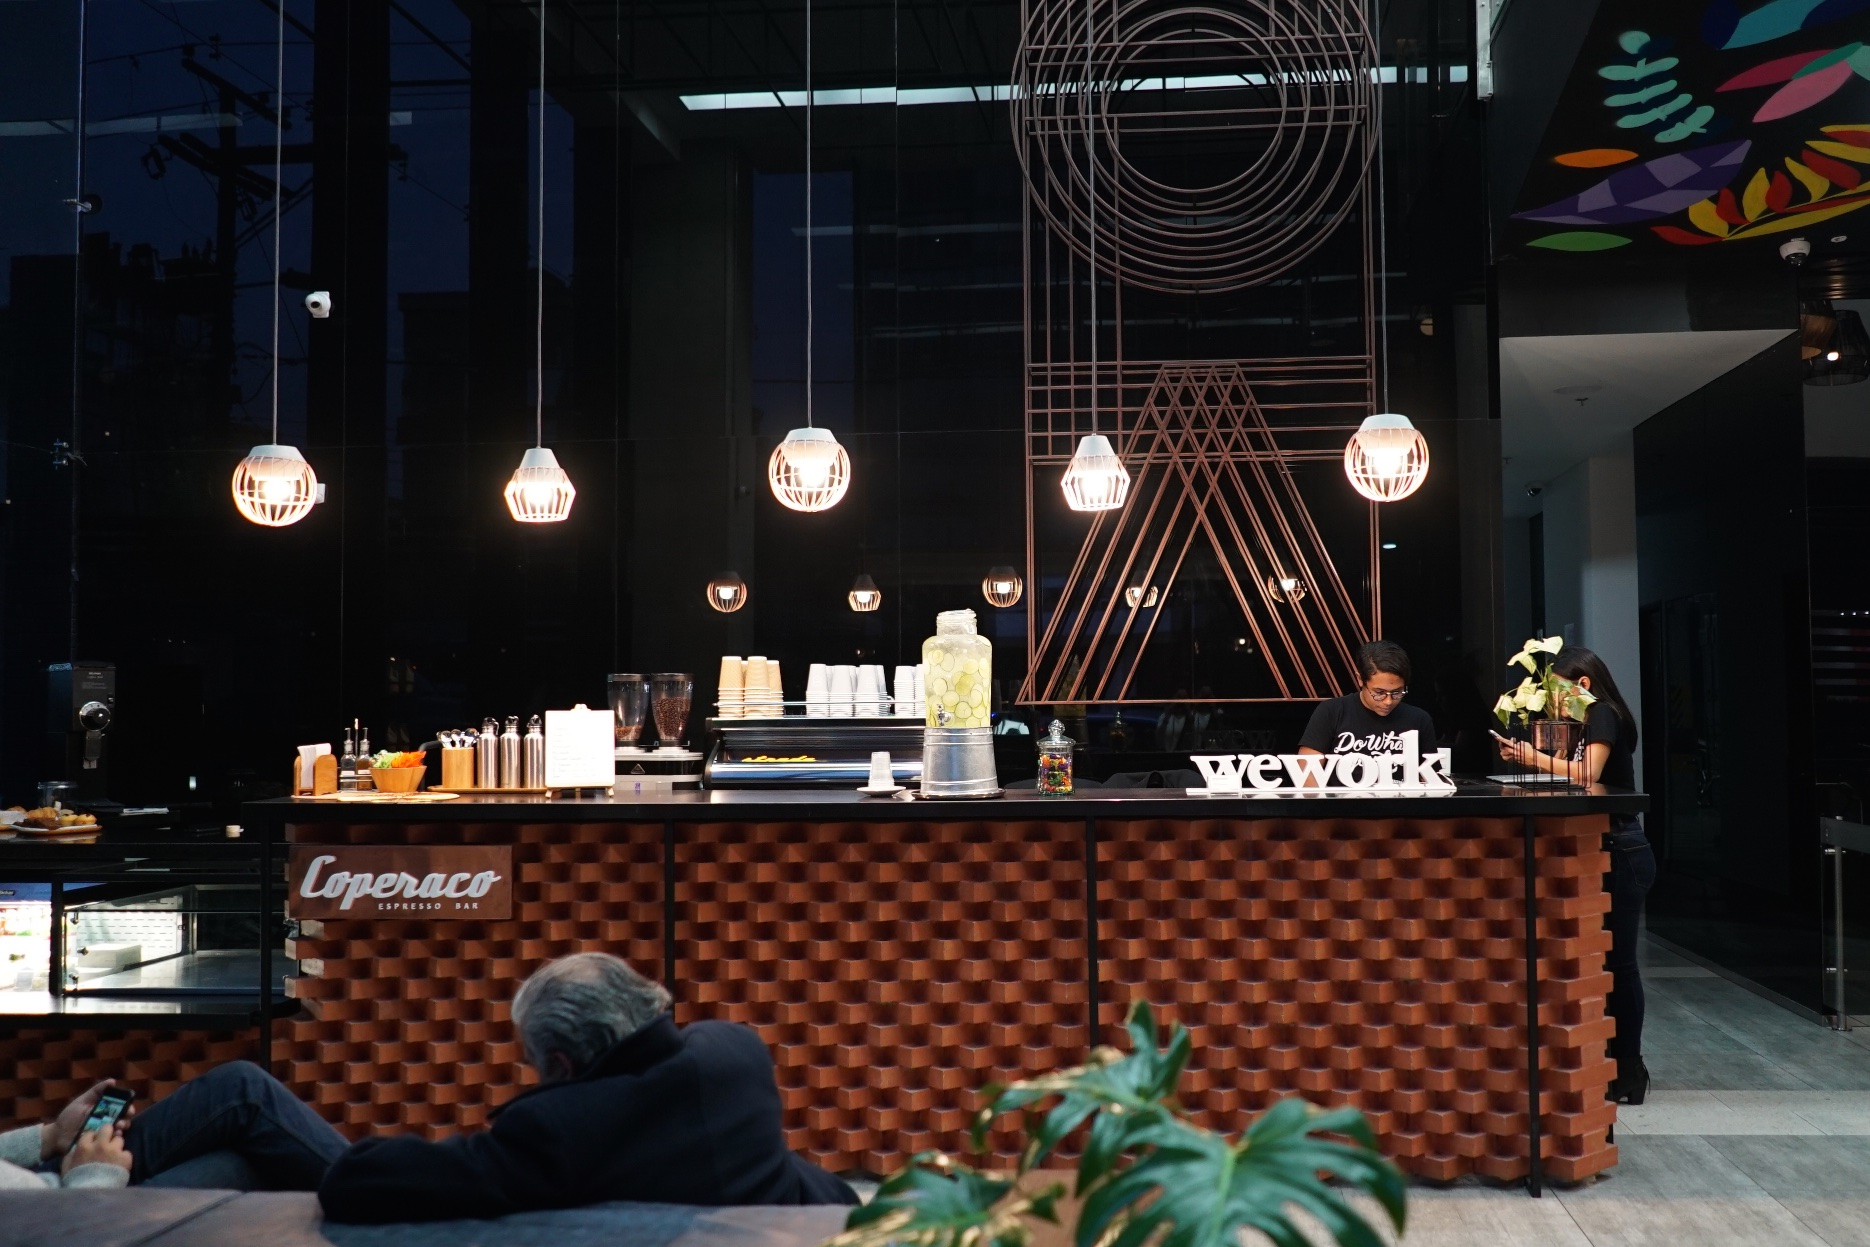 """WeWork's reception pays tribute to Bogotá, """"The City of Brick"""" with a front desk made of stacked bricks."""